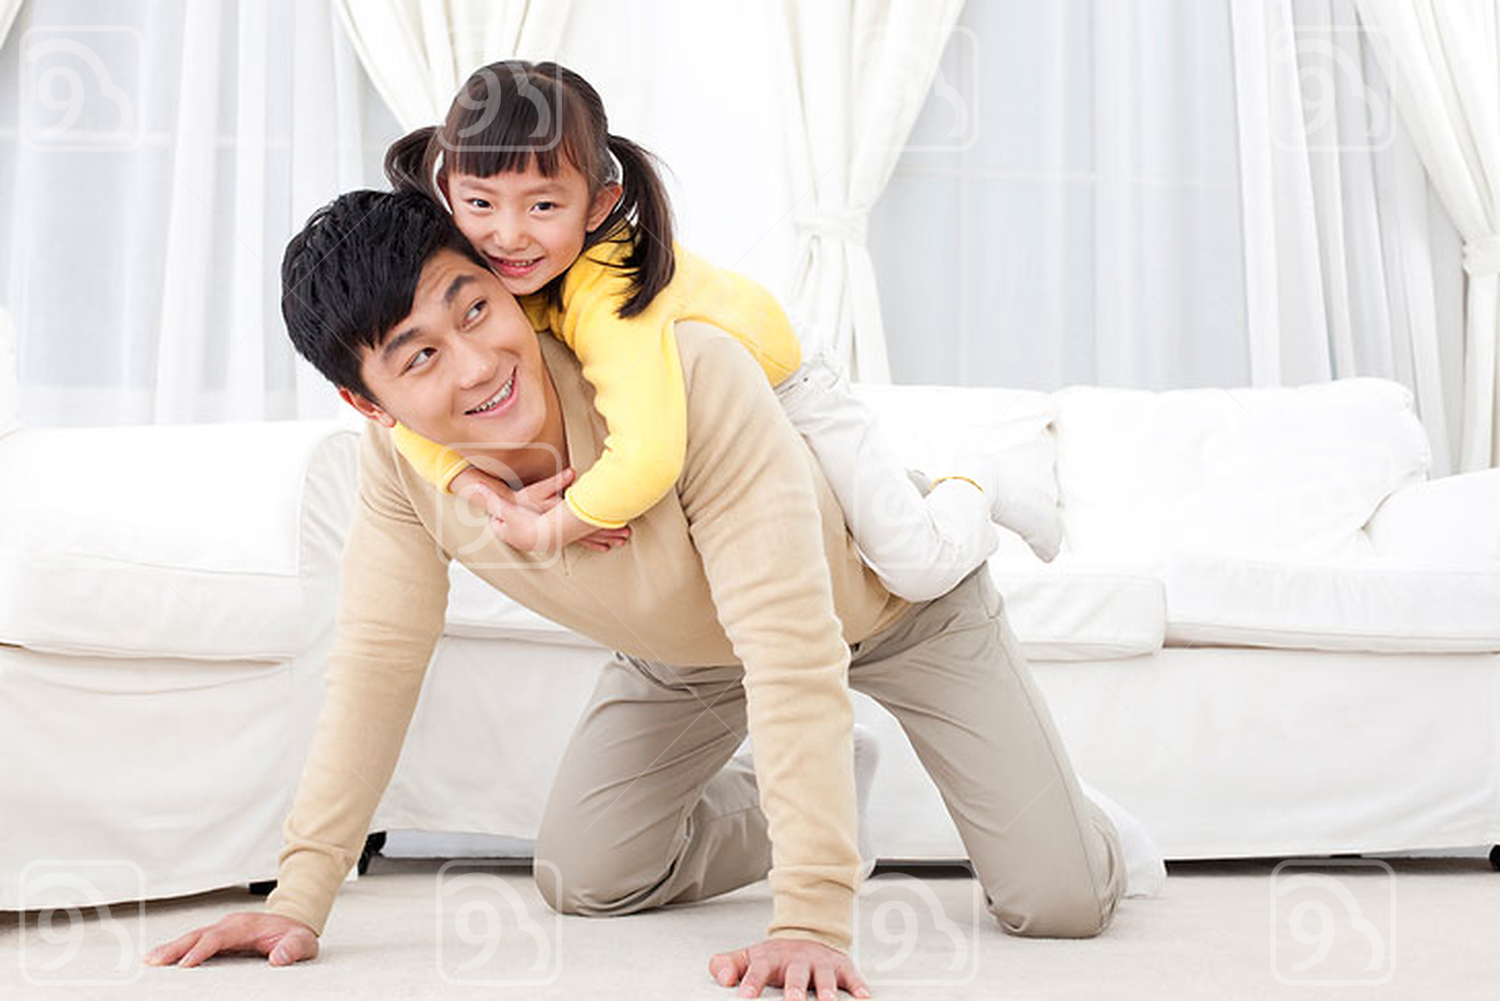 Chinese father playing with his daughter